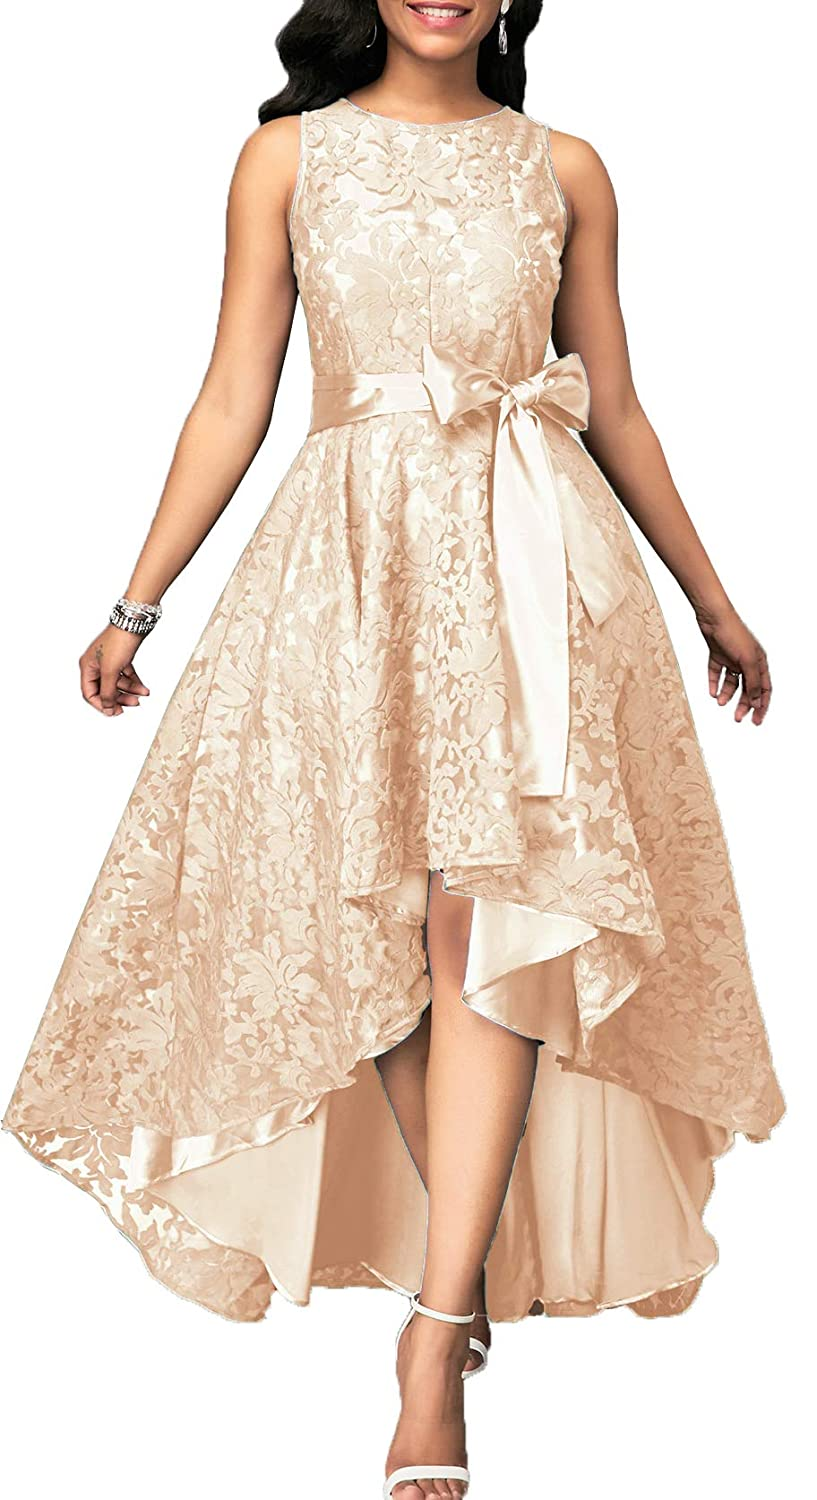 Champagne EileenDor Women's Short Front Long Back Lace Prom Dresses Sleeveless HiLo Ankle Cocktail Party Dresses